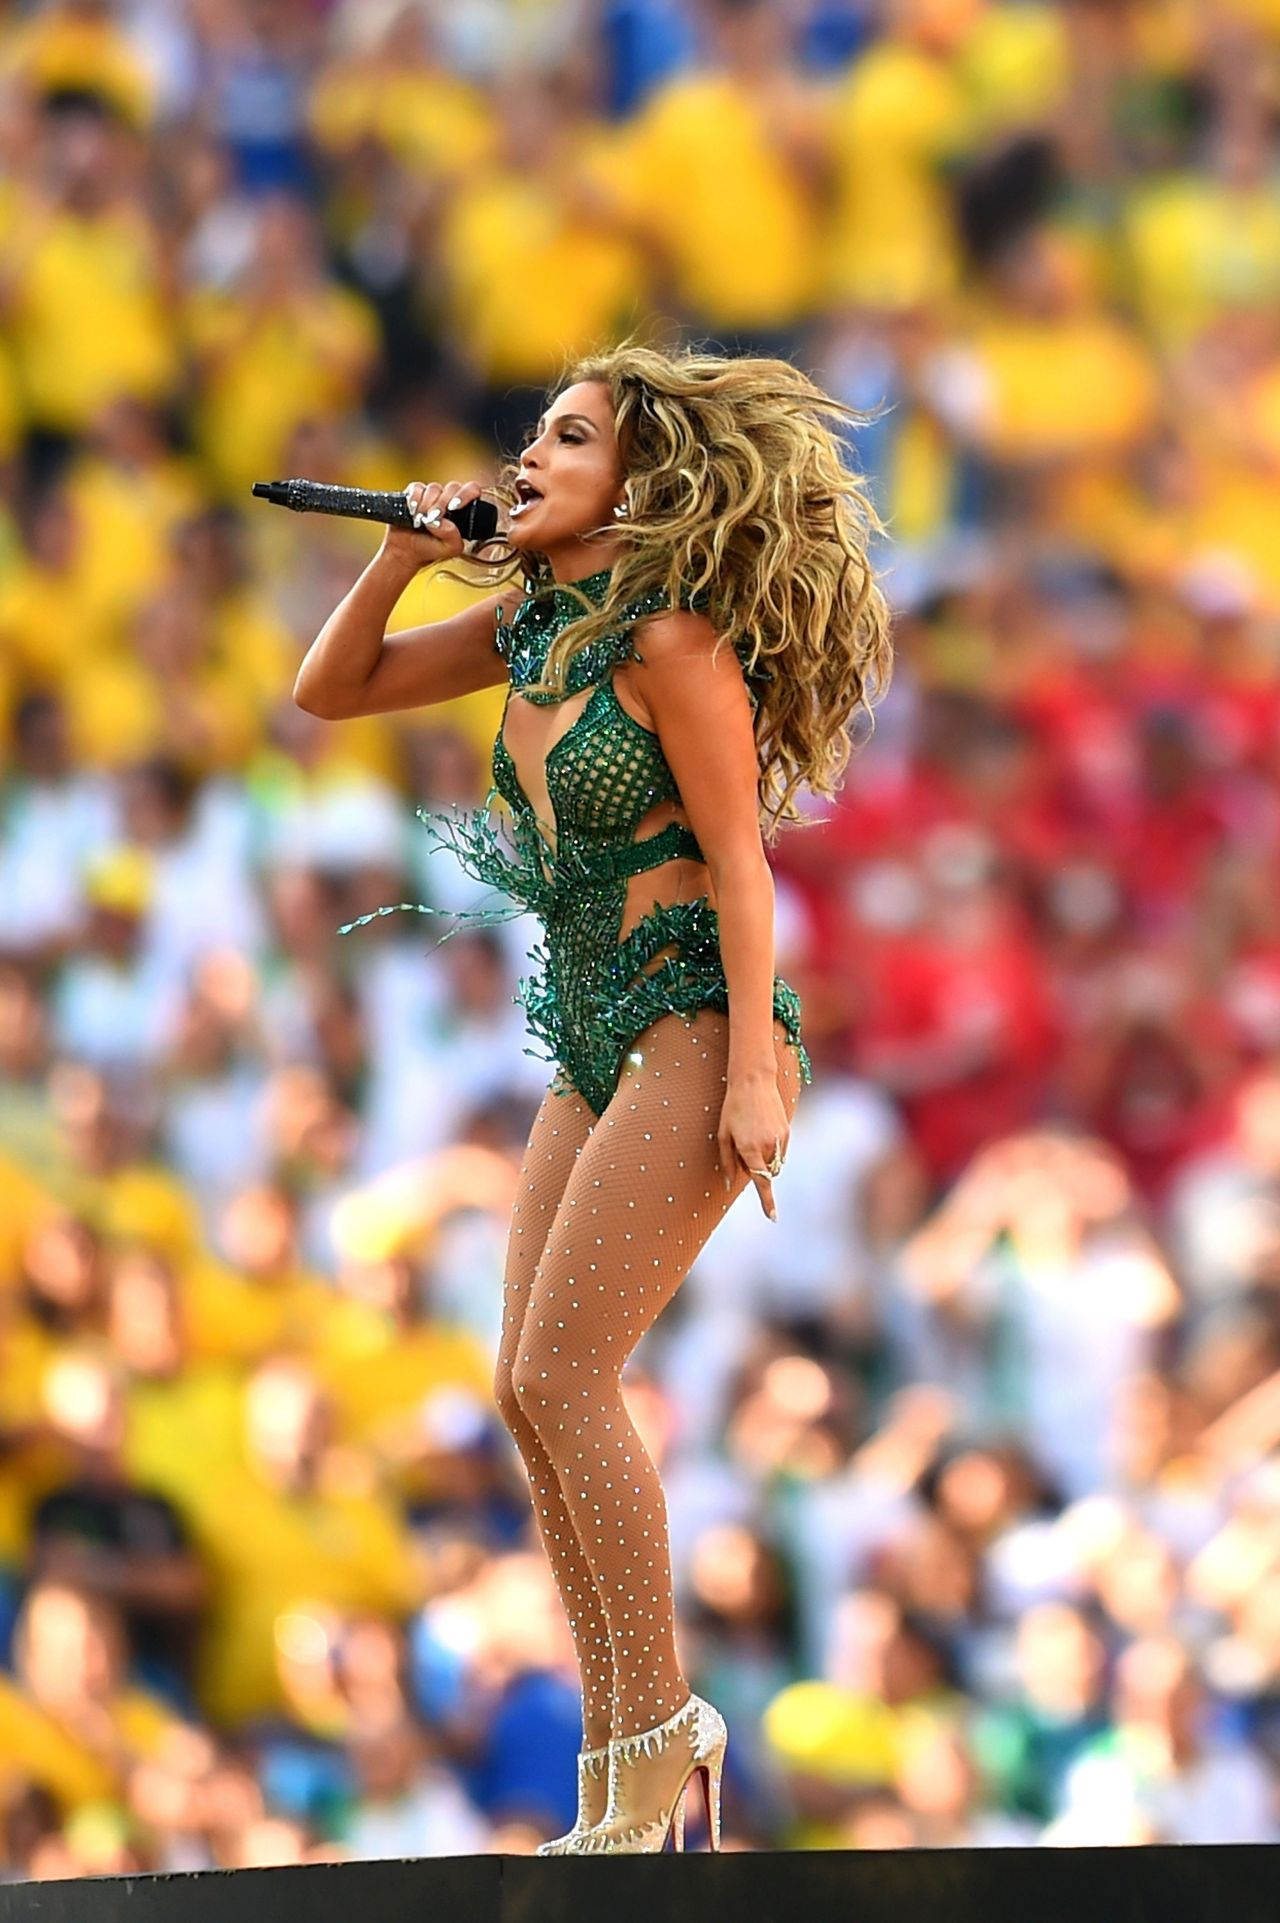 Jennifer Lopez Performs at FIFA World Cup 2014 Opening